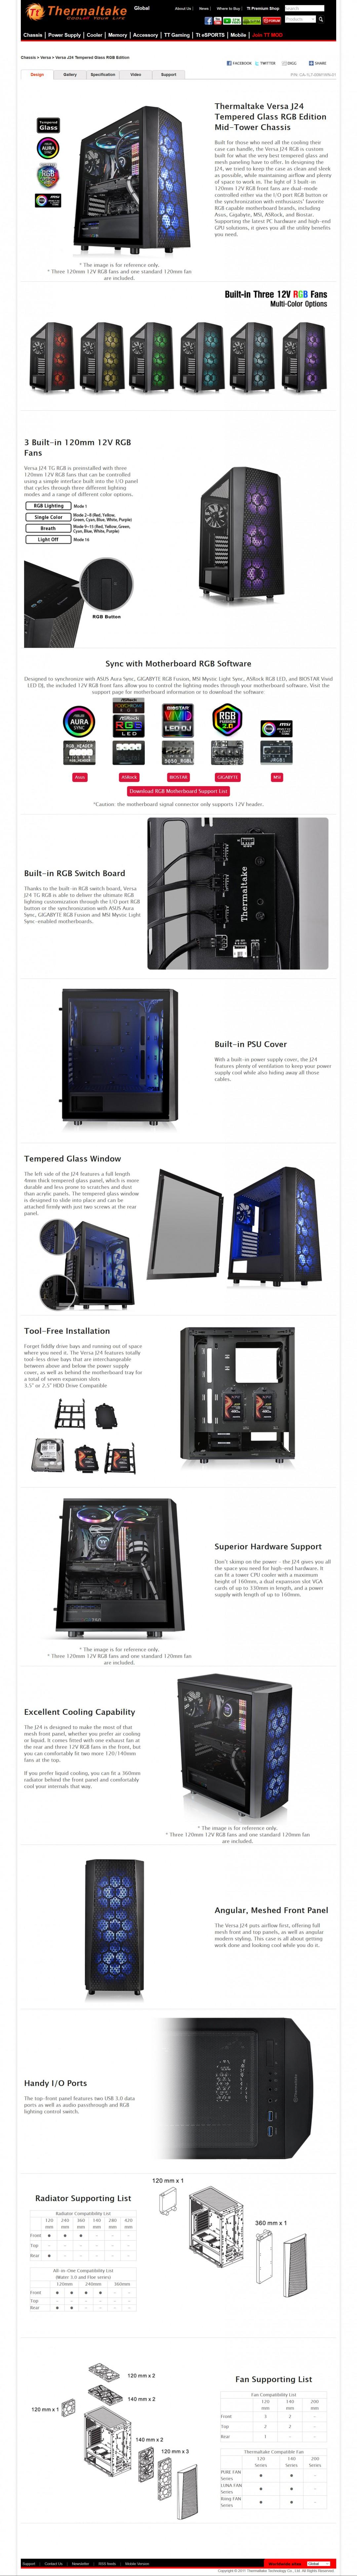 2019 03 05 20 20 42 Thermaltake Versa J24 Tempered Glass RGB Edition Preview